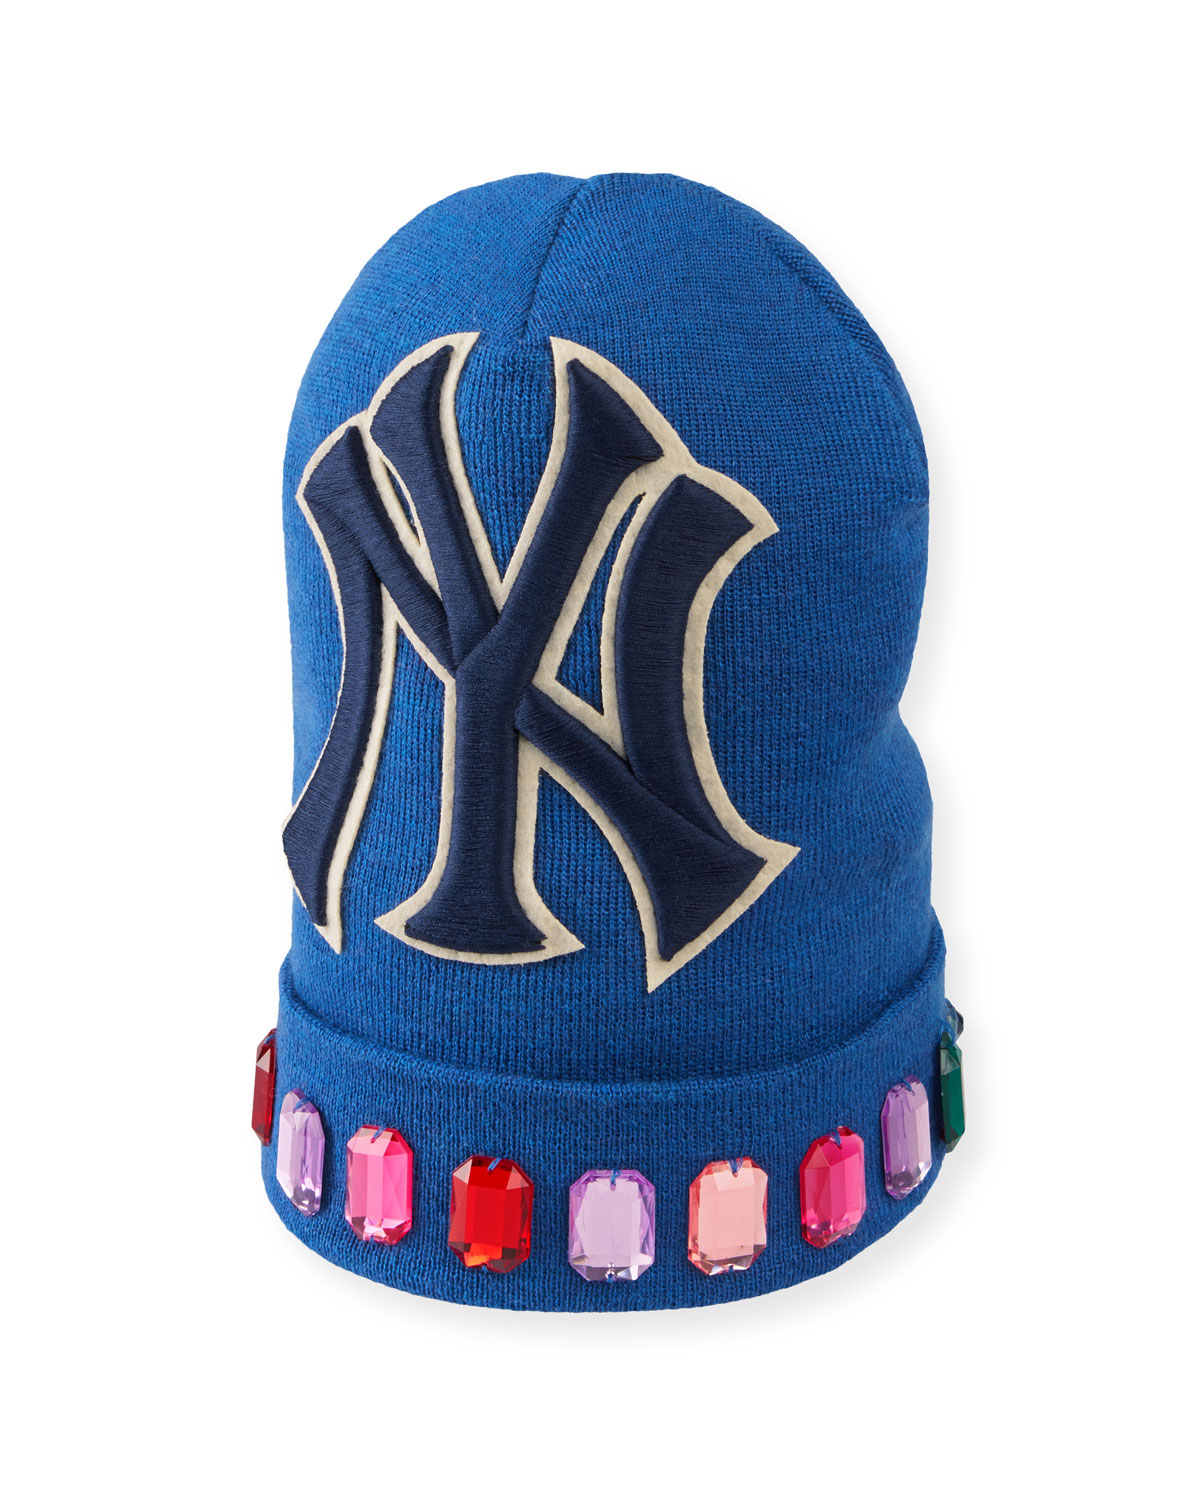 be6122eaa2a Gucci Men s Jewel-Trim New York Yankees-Applique Beanie Hat In Blue ...